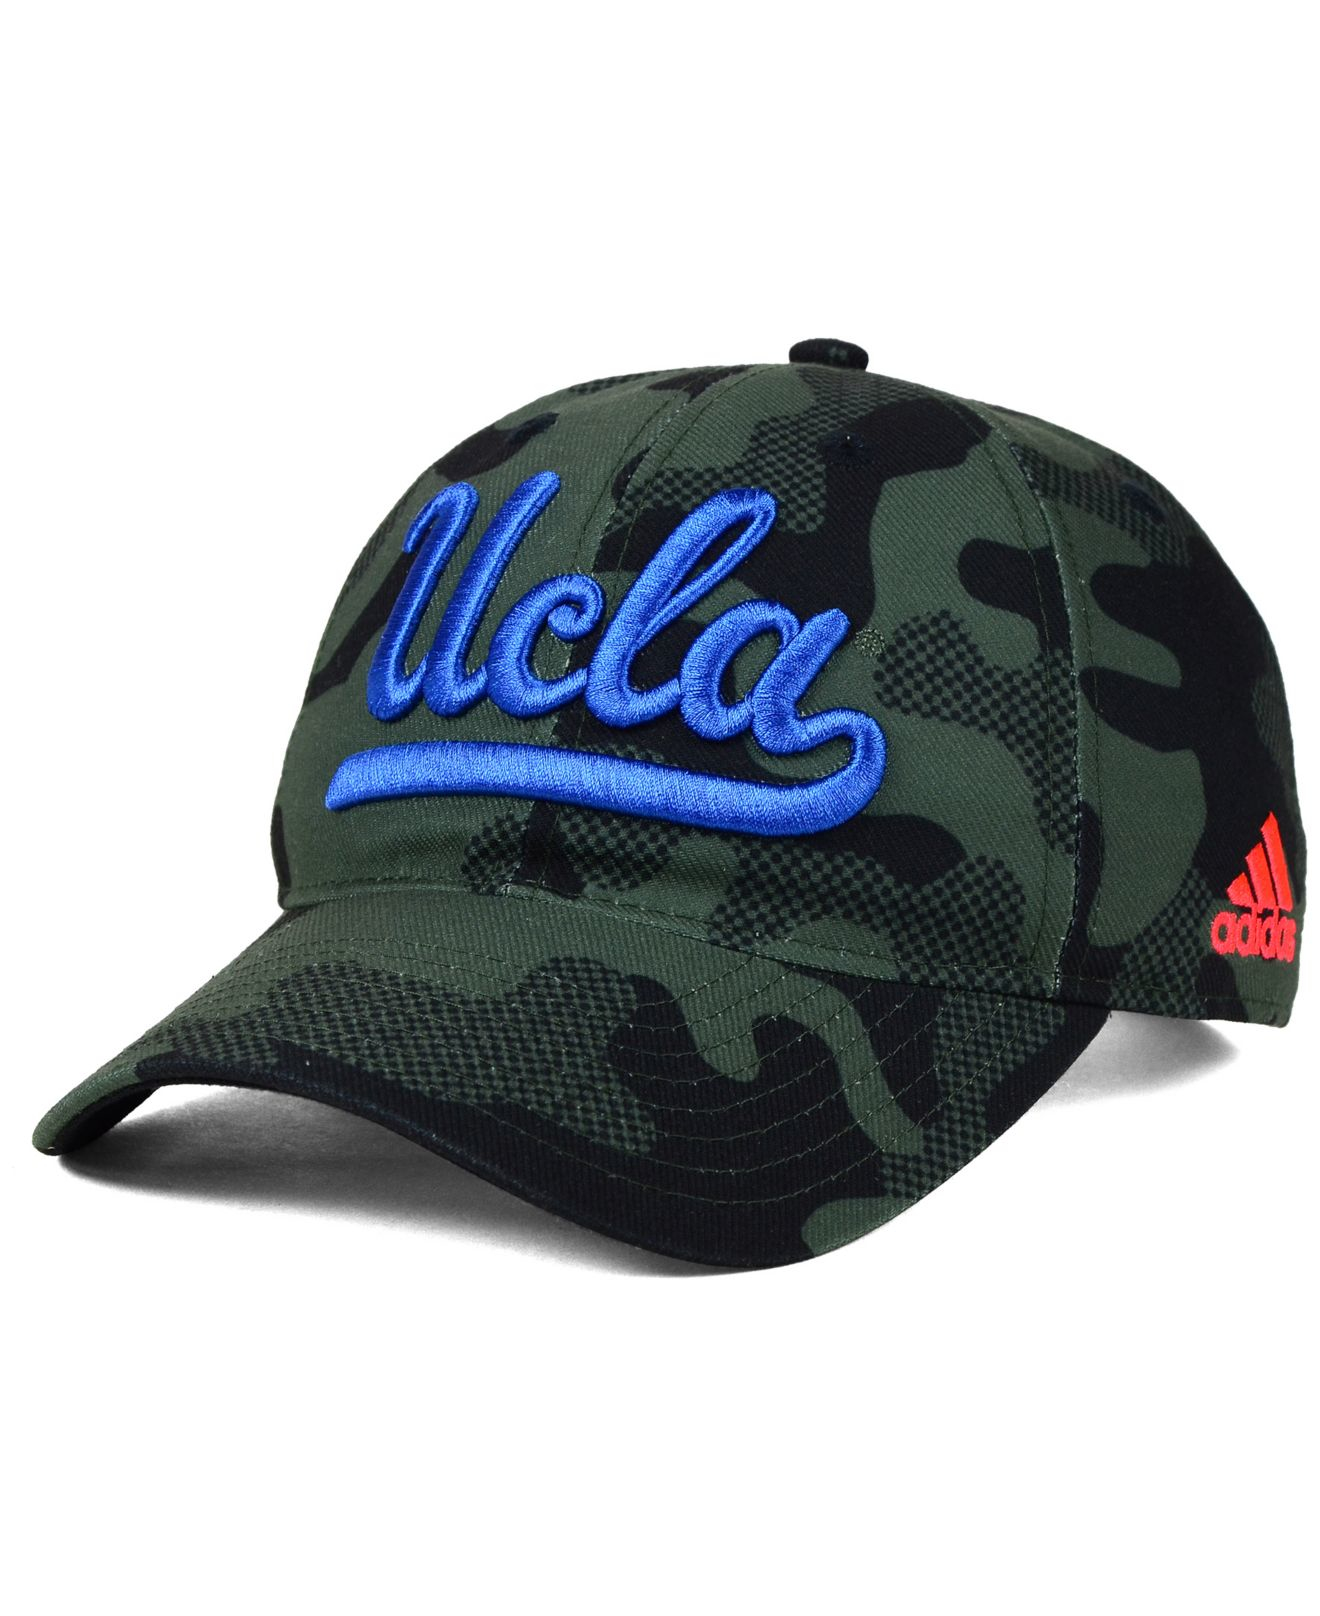 low priced 45d3c 08b6a ... hat cebf5 de53d  uk lyst adidas ucla bruins veterans day camo slouch adjustable  cap in 11899 76104